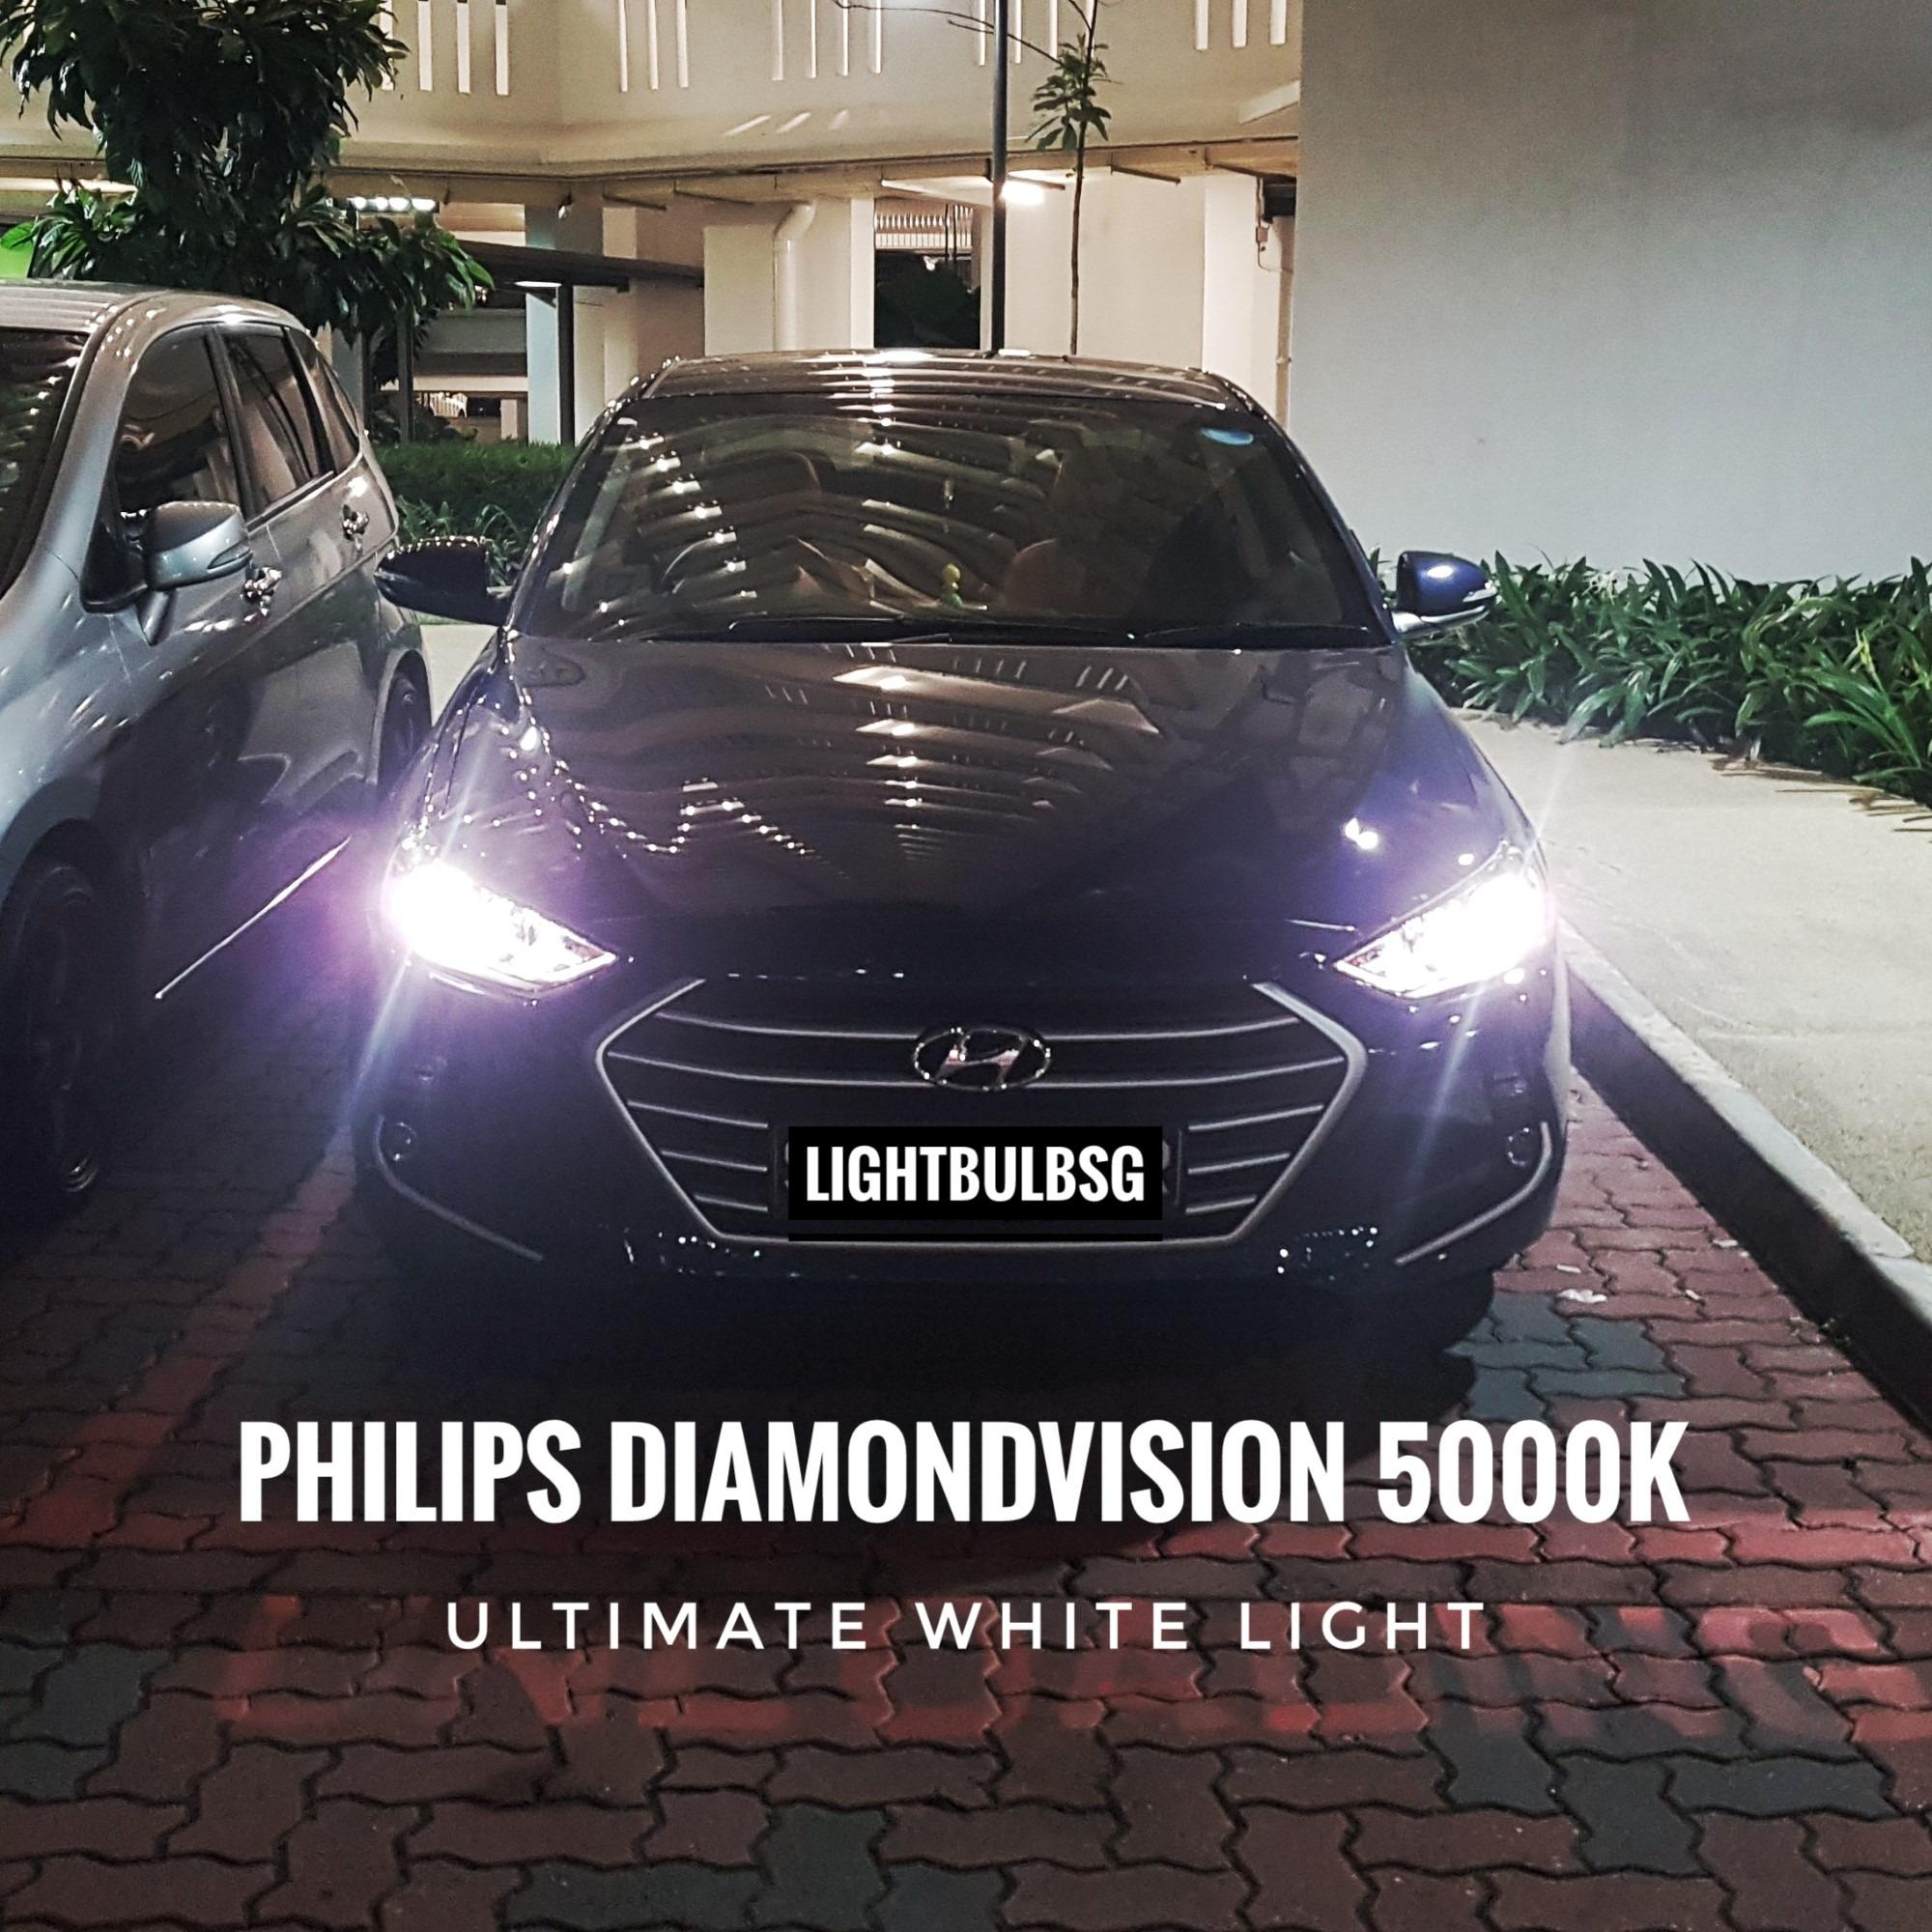 How To Buy Hb3 9005 Philips Diamondvision 5000K Headlight Headlamp For Cars And Motorcycles White Lights